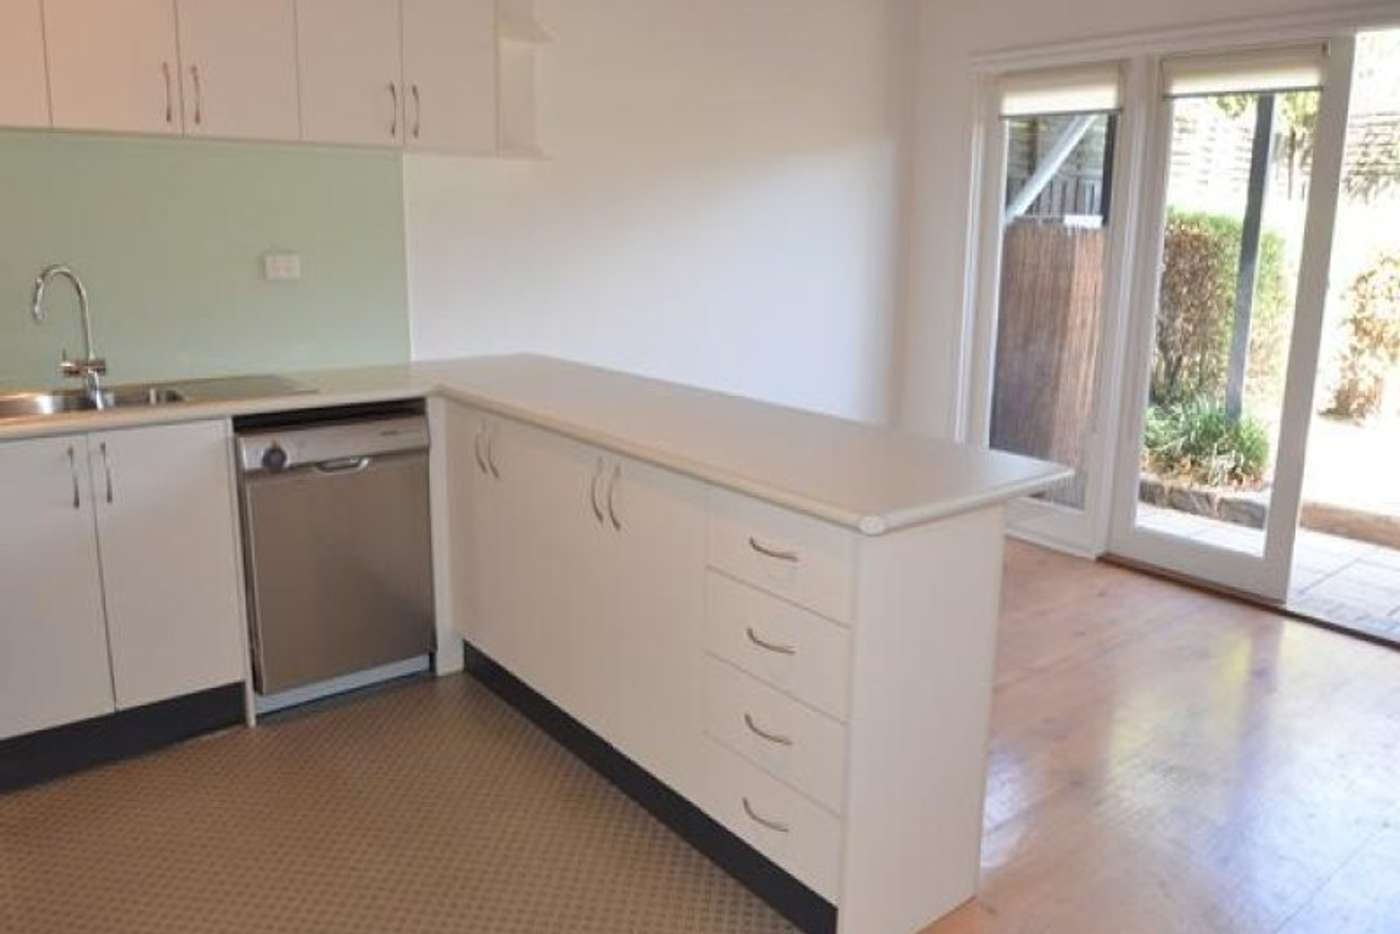 Sixth view of Homely house listing, 90 Bunting Street, Richmond VIC 3121